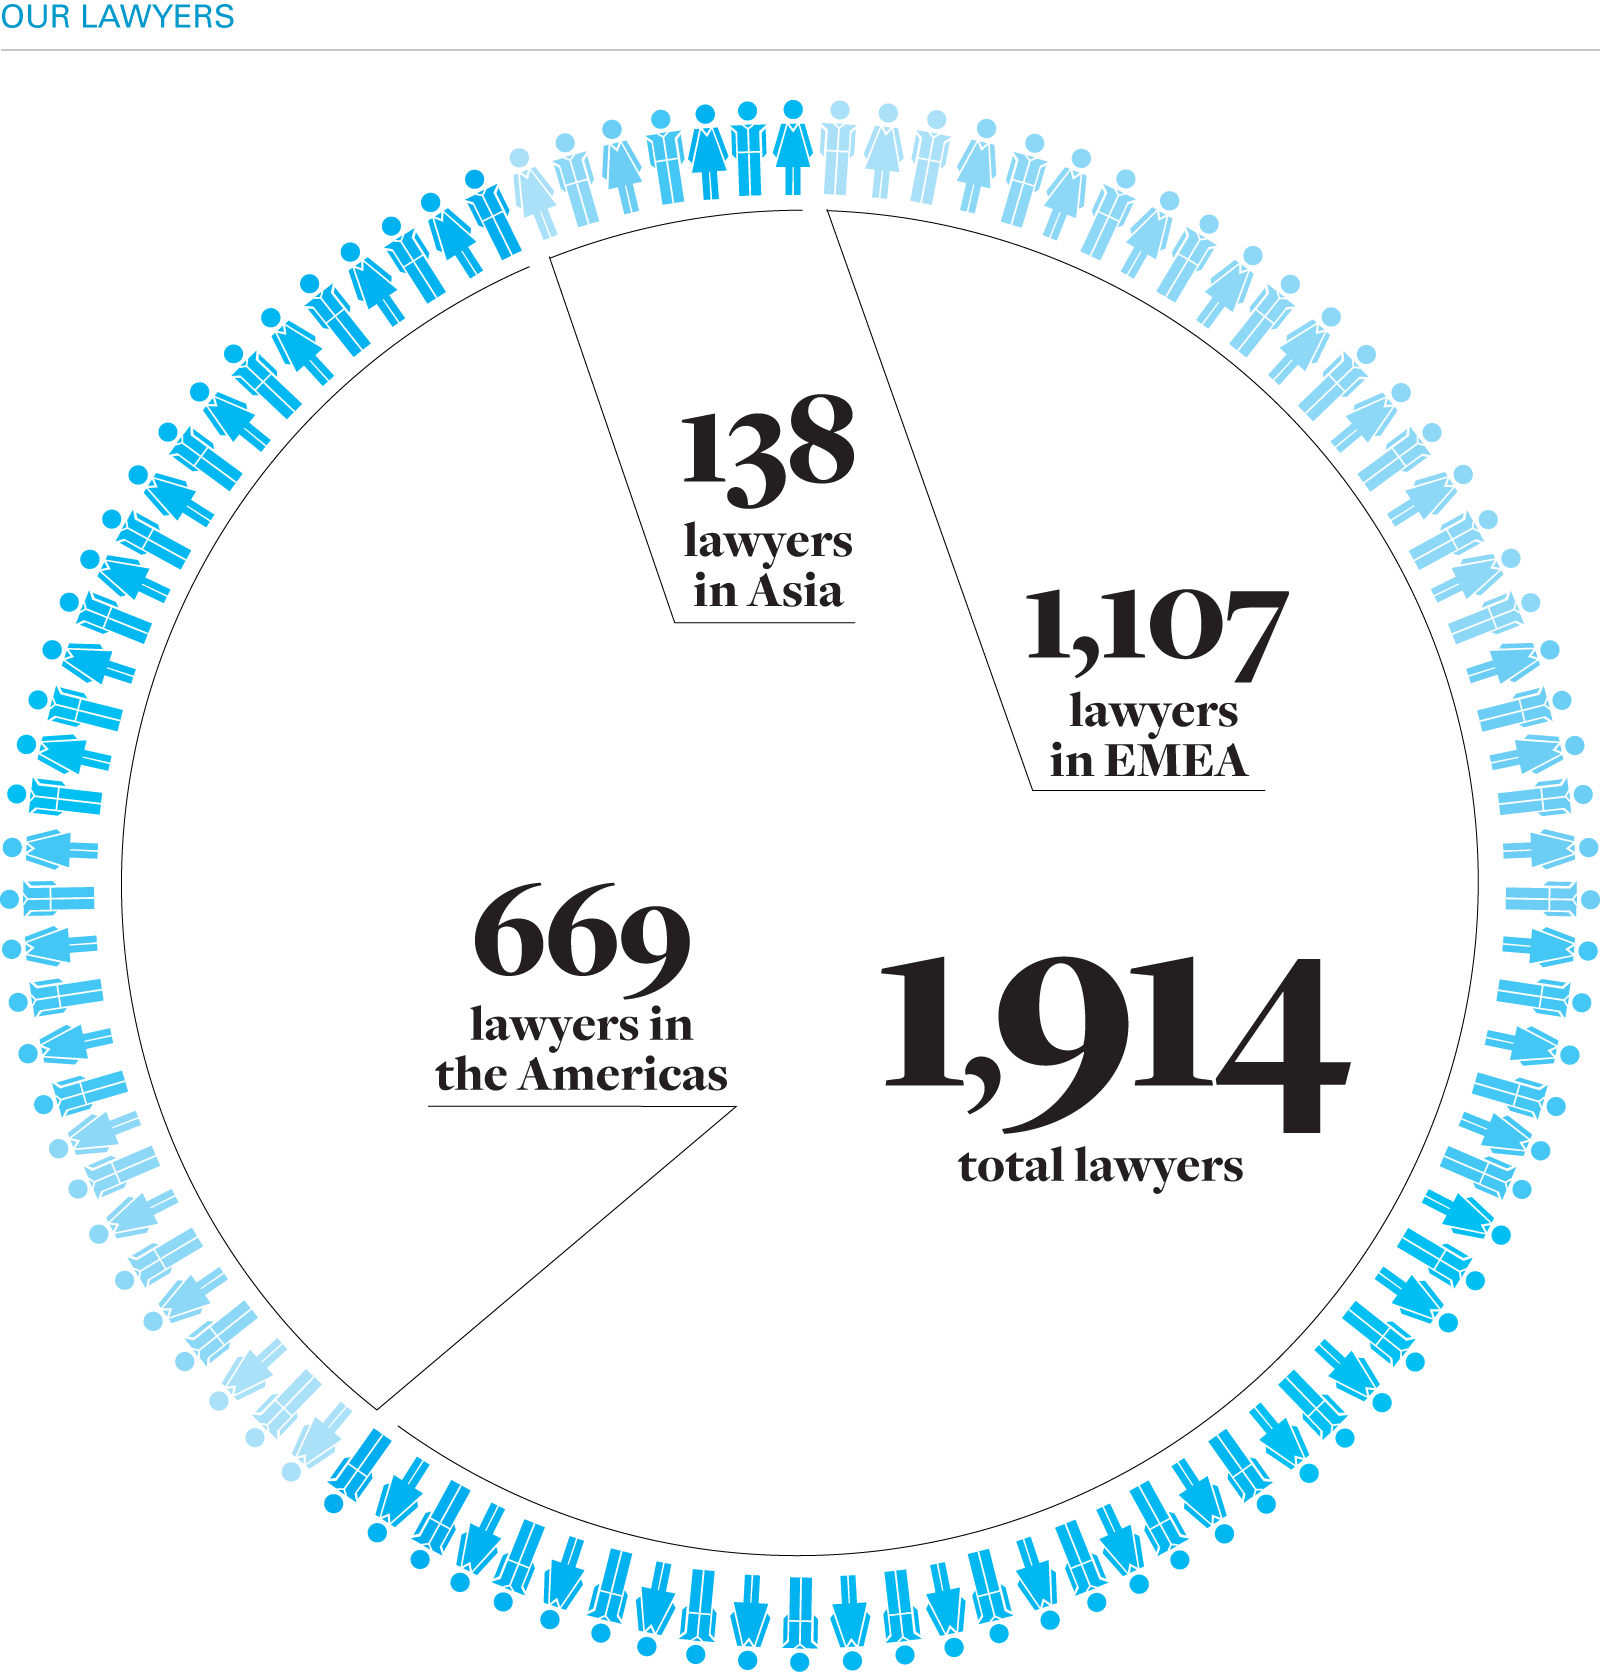 1,914 lawyers: 669 in Americas, 1,107 in EMEA, 138 in Asia